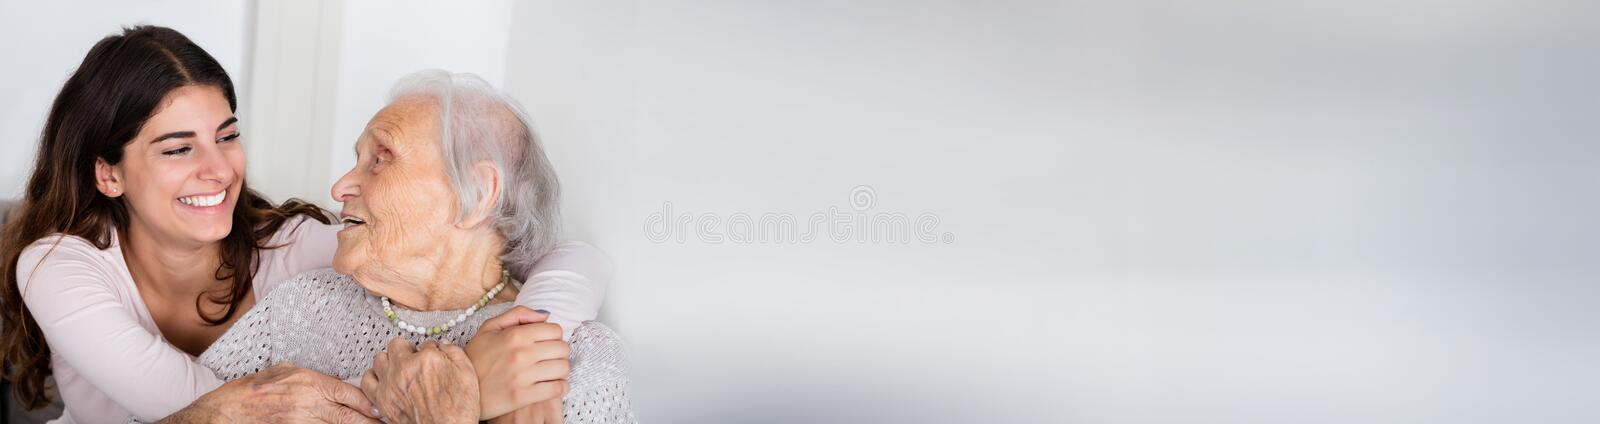 Happy Senior Woman And Granddaughter stock images